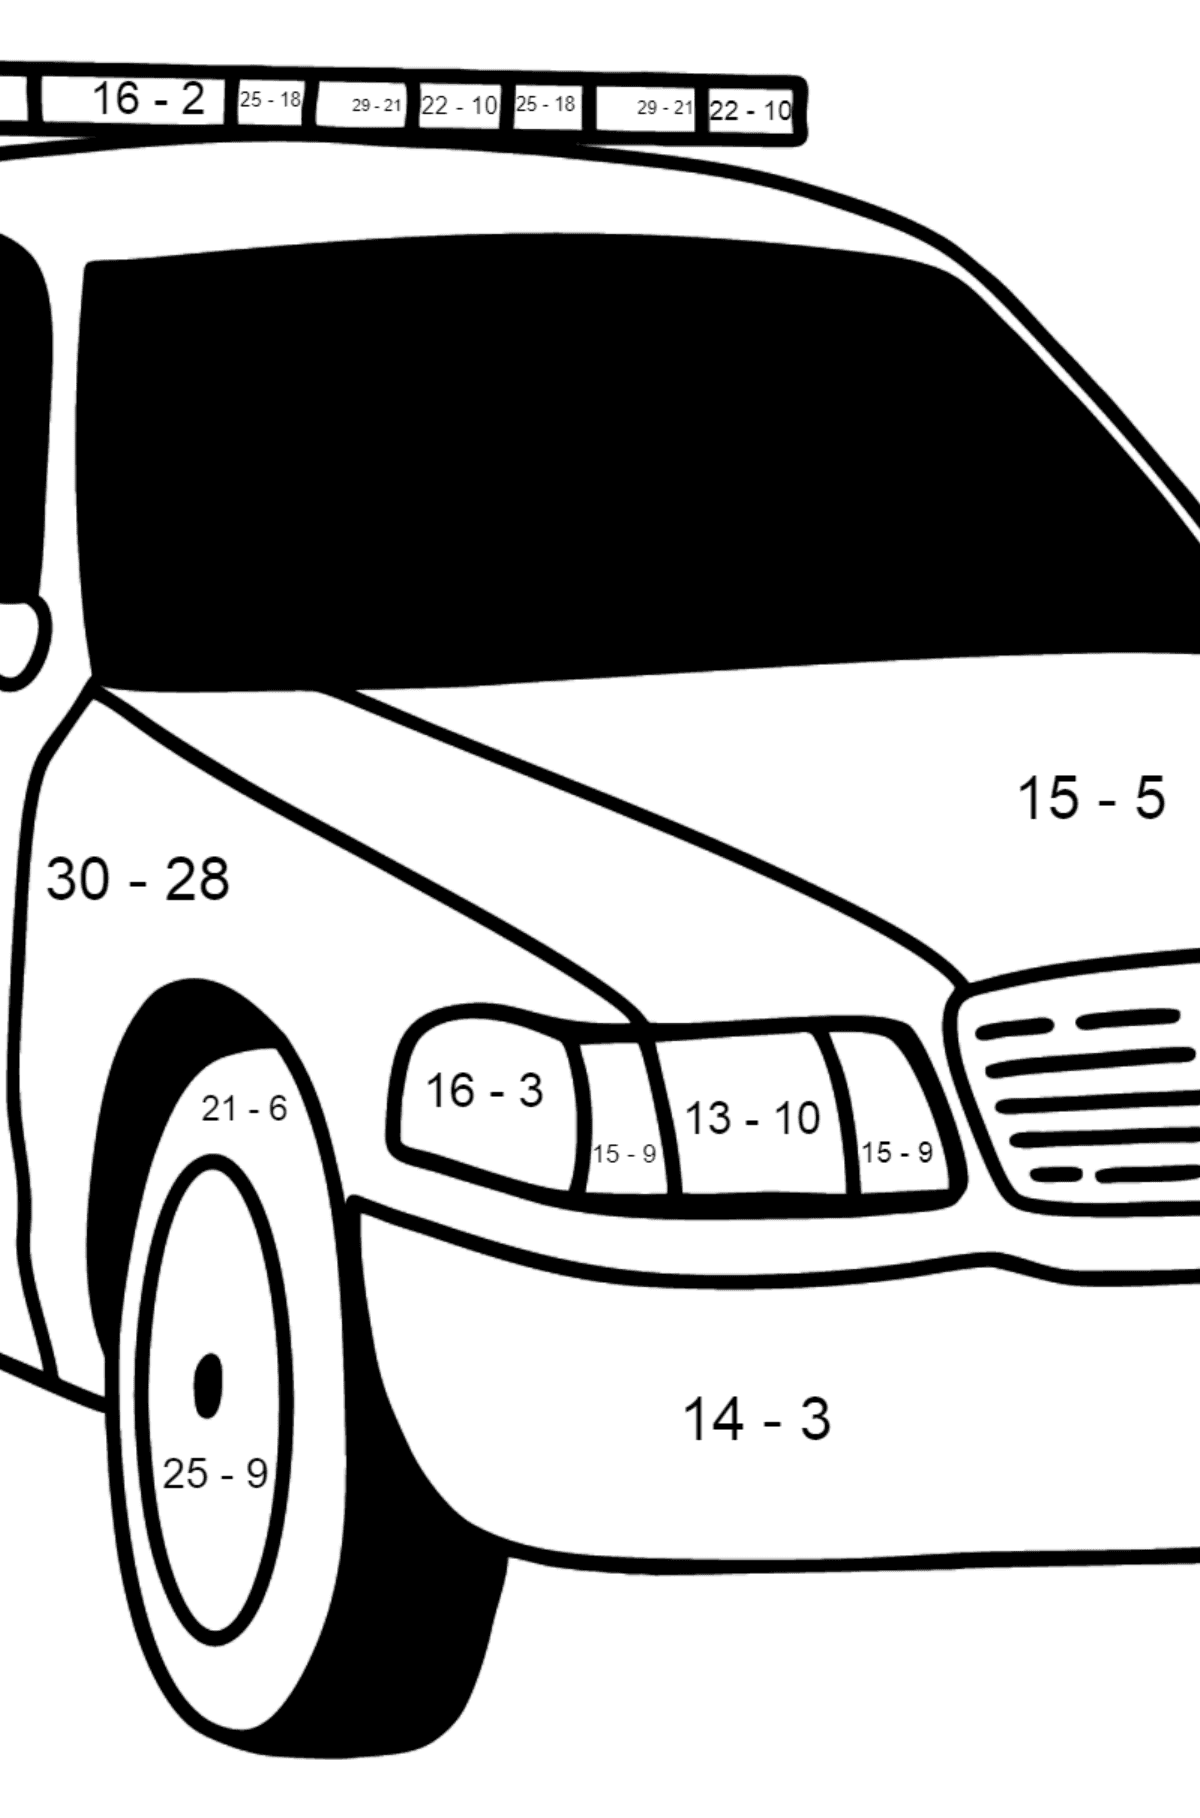 US Police Car coloring page - Math Coloring - Subtraction for Kids